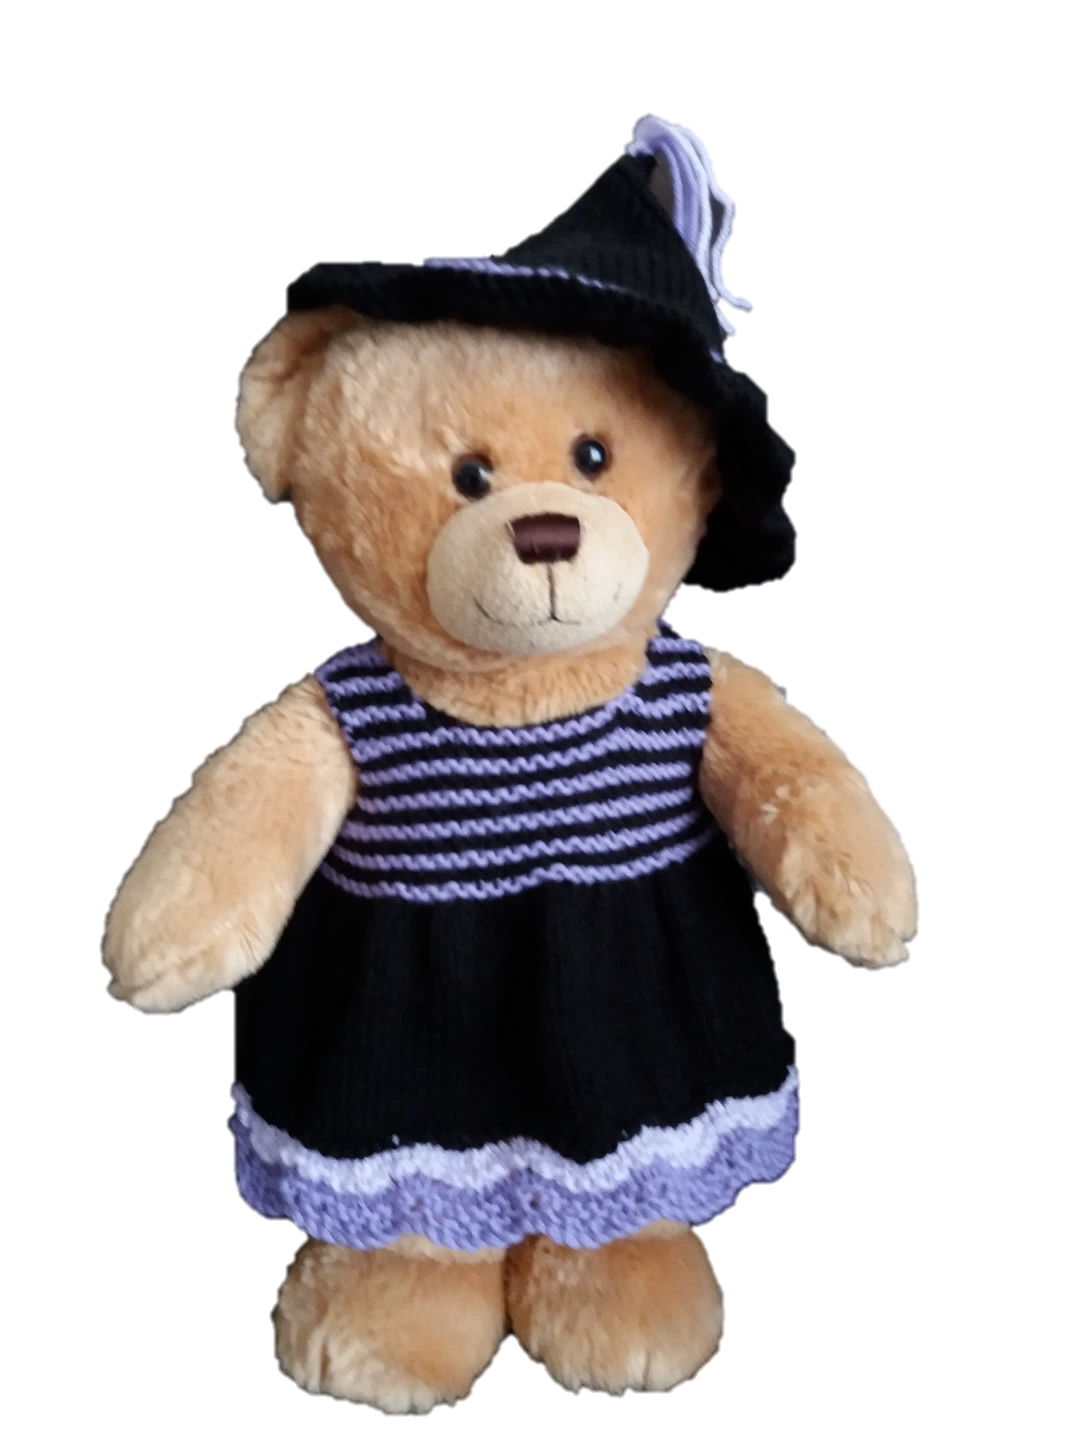 Linmary Knits: Teddy Bear Halloween dress and hat